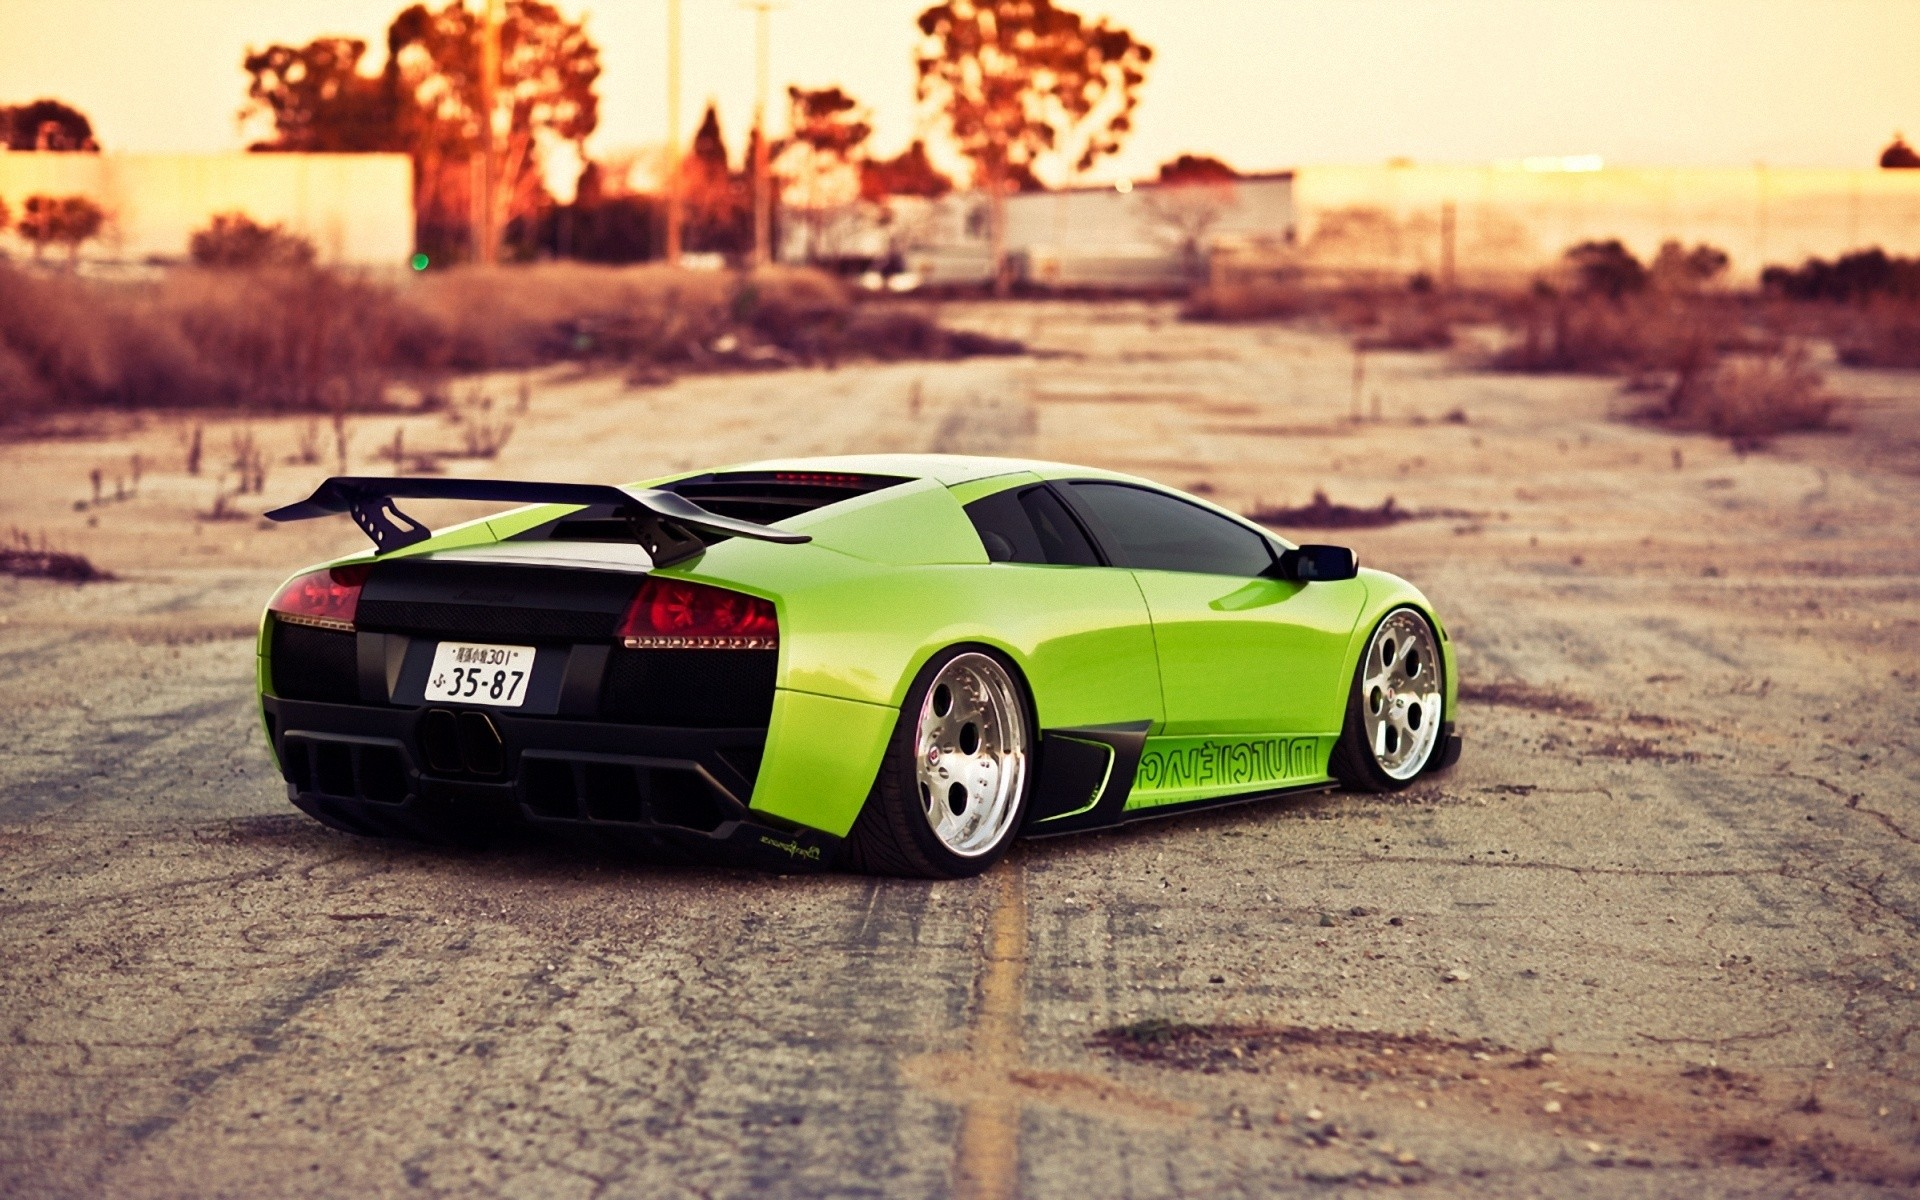 Slammed Cars Wallpaper Lamborghini green wallpaper 1920x1200